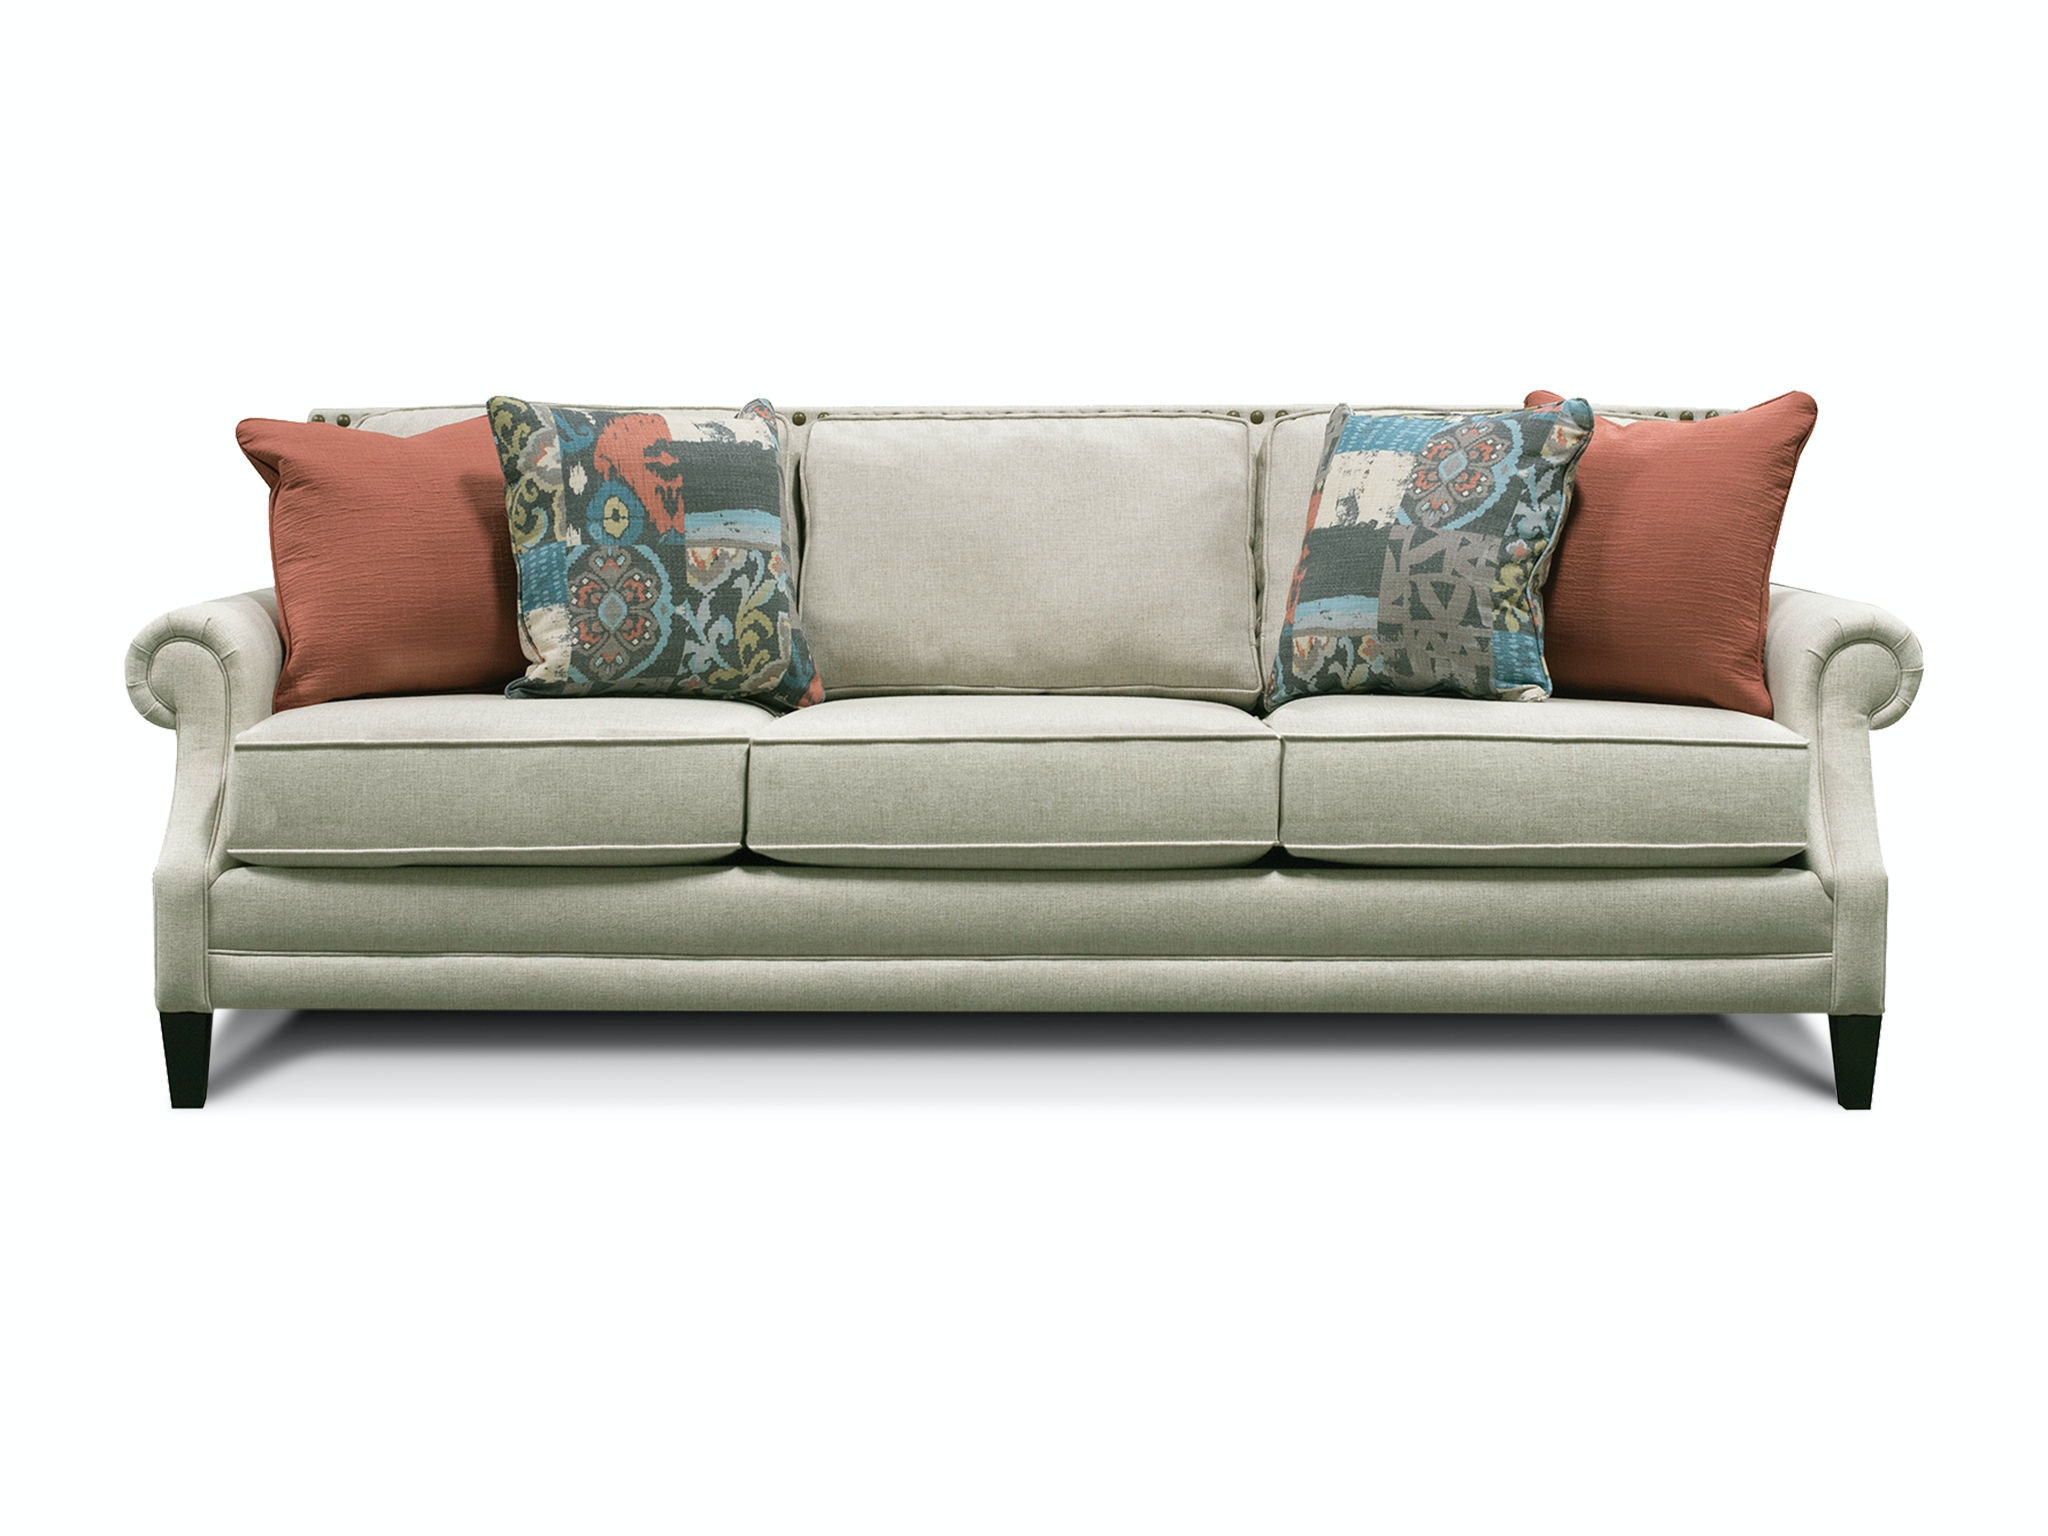 palmer sofa large grey cushions england living room with nails 7l05n furniture